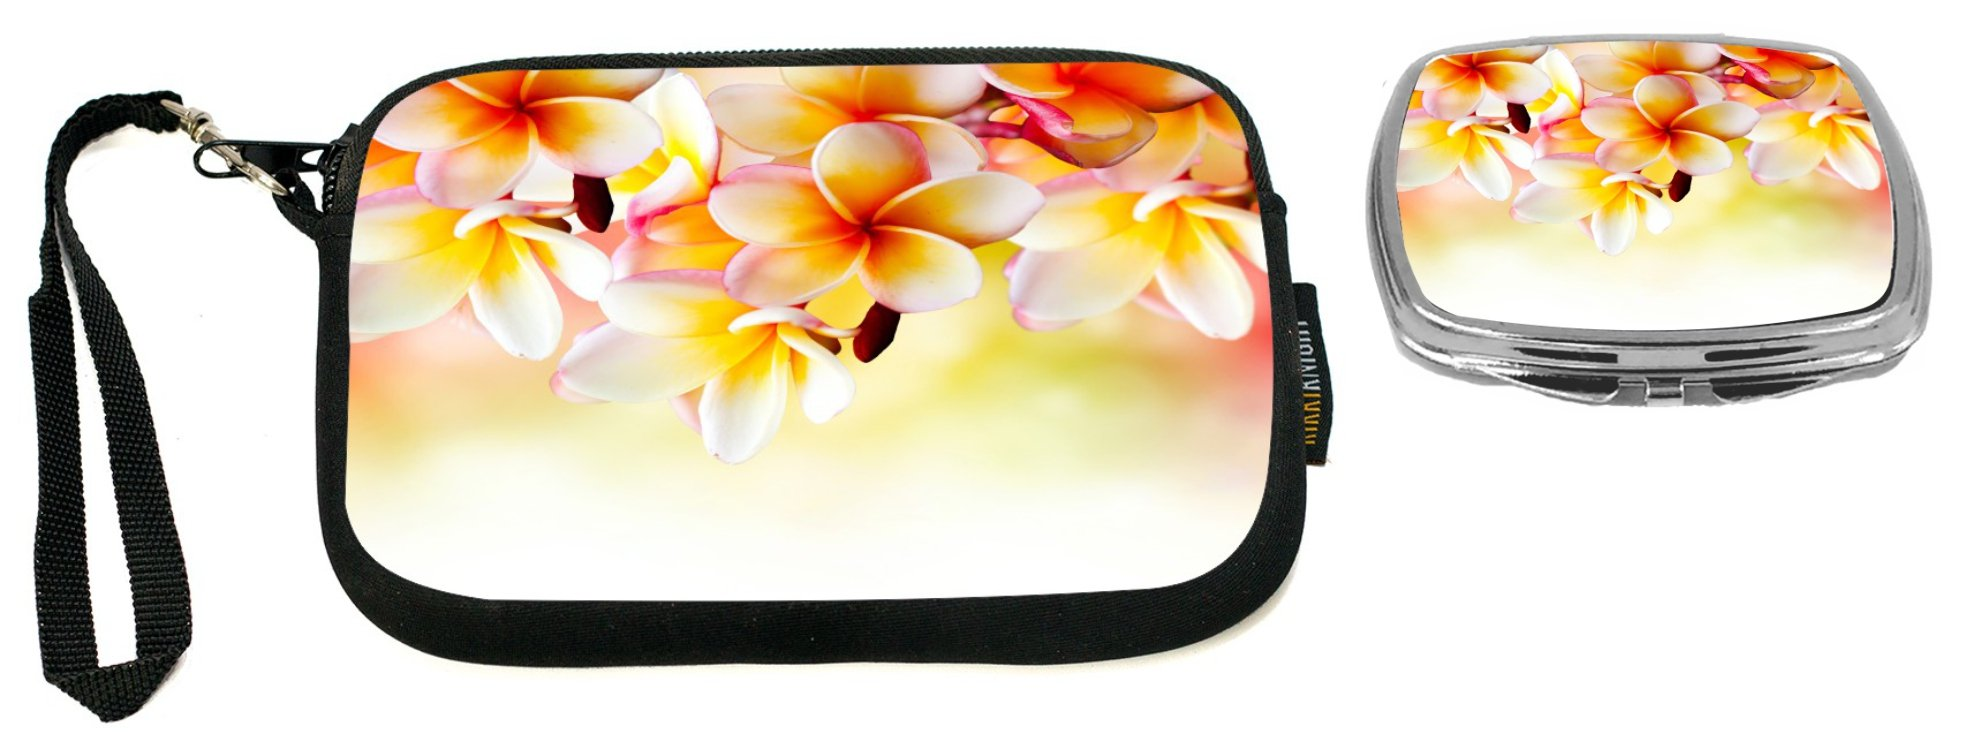 Rikki Knight Frangipani Tropical Spa Flower Design Neoprene Clutch Wristlet with Matching Square Compact Mirror